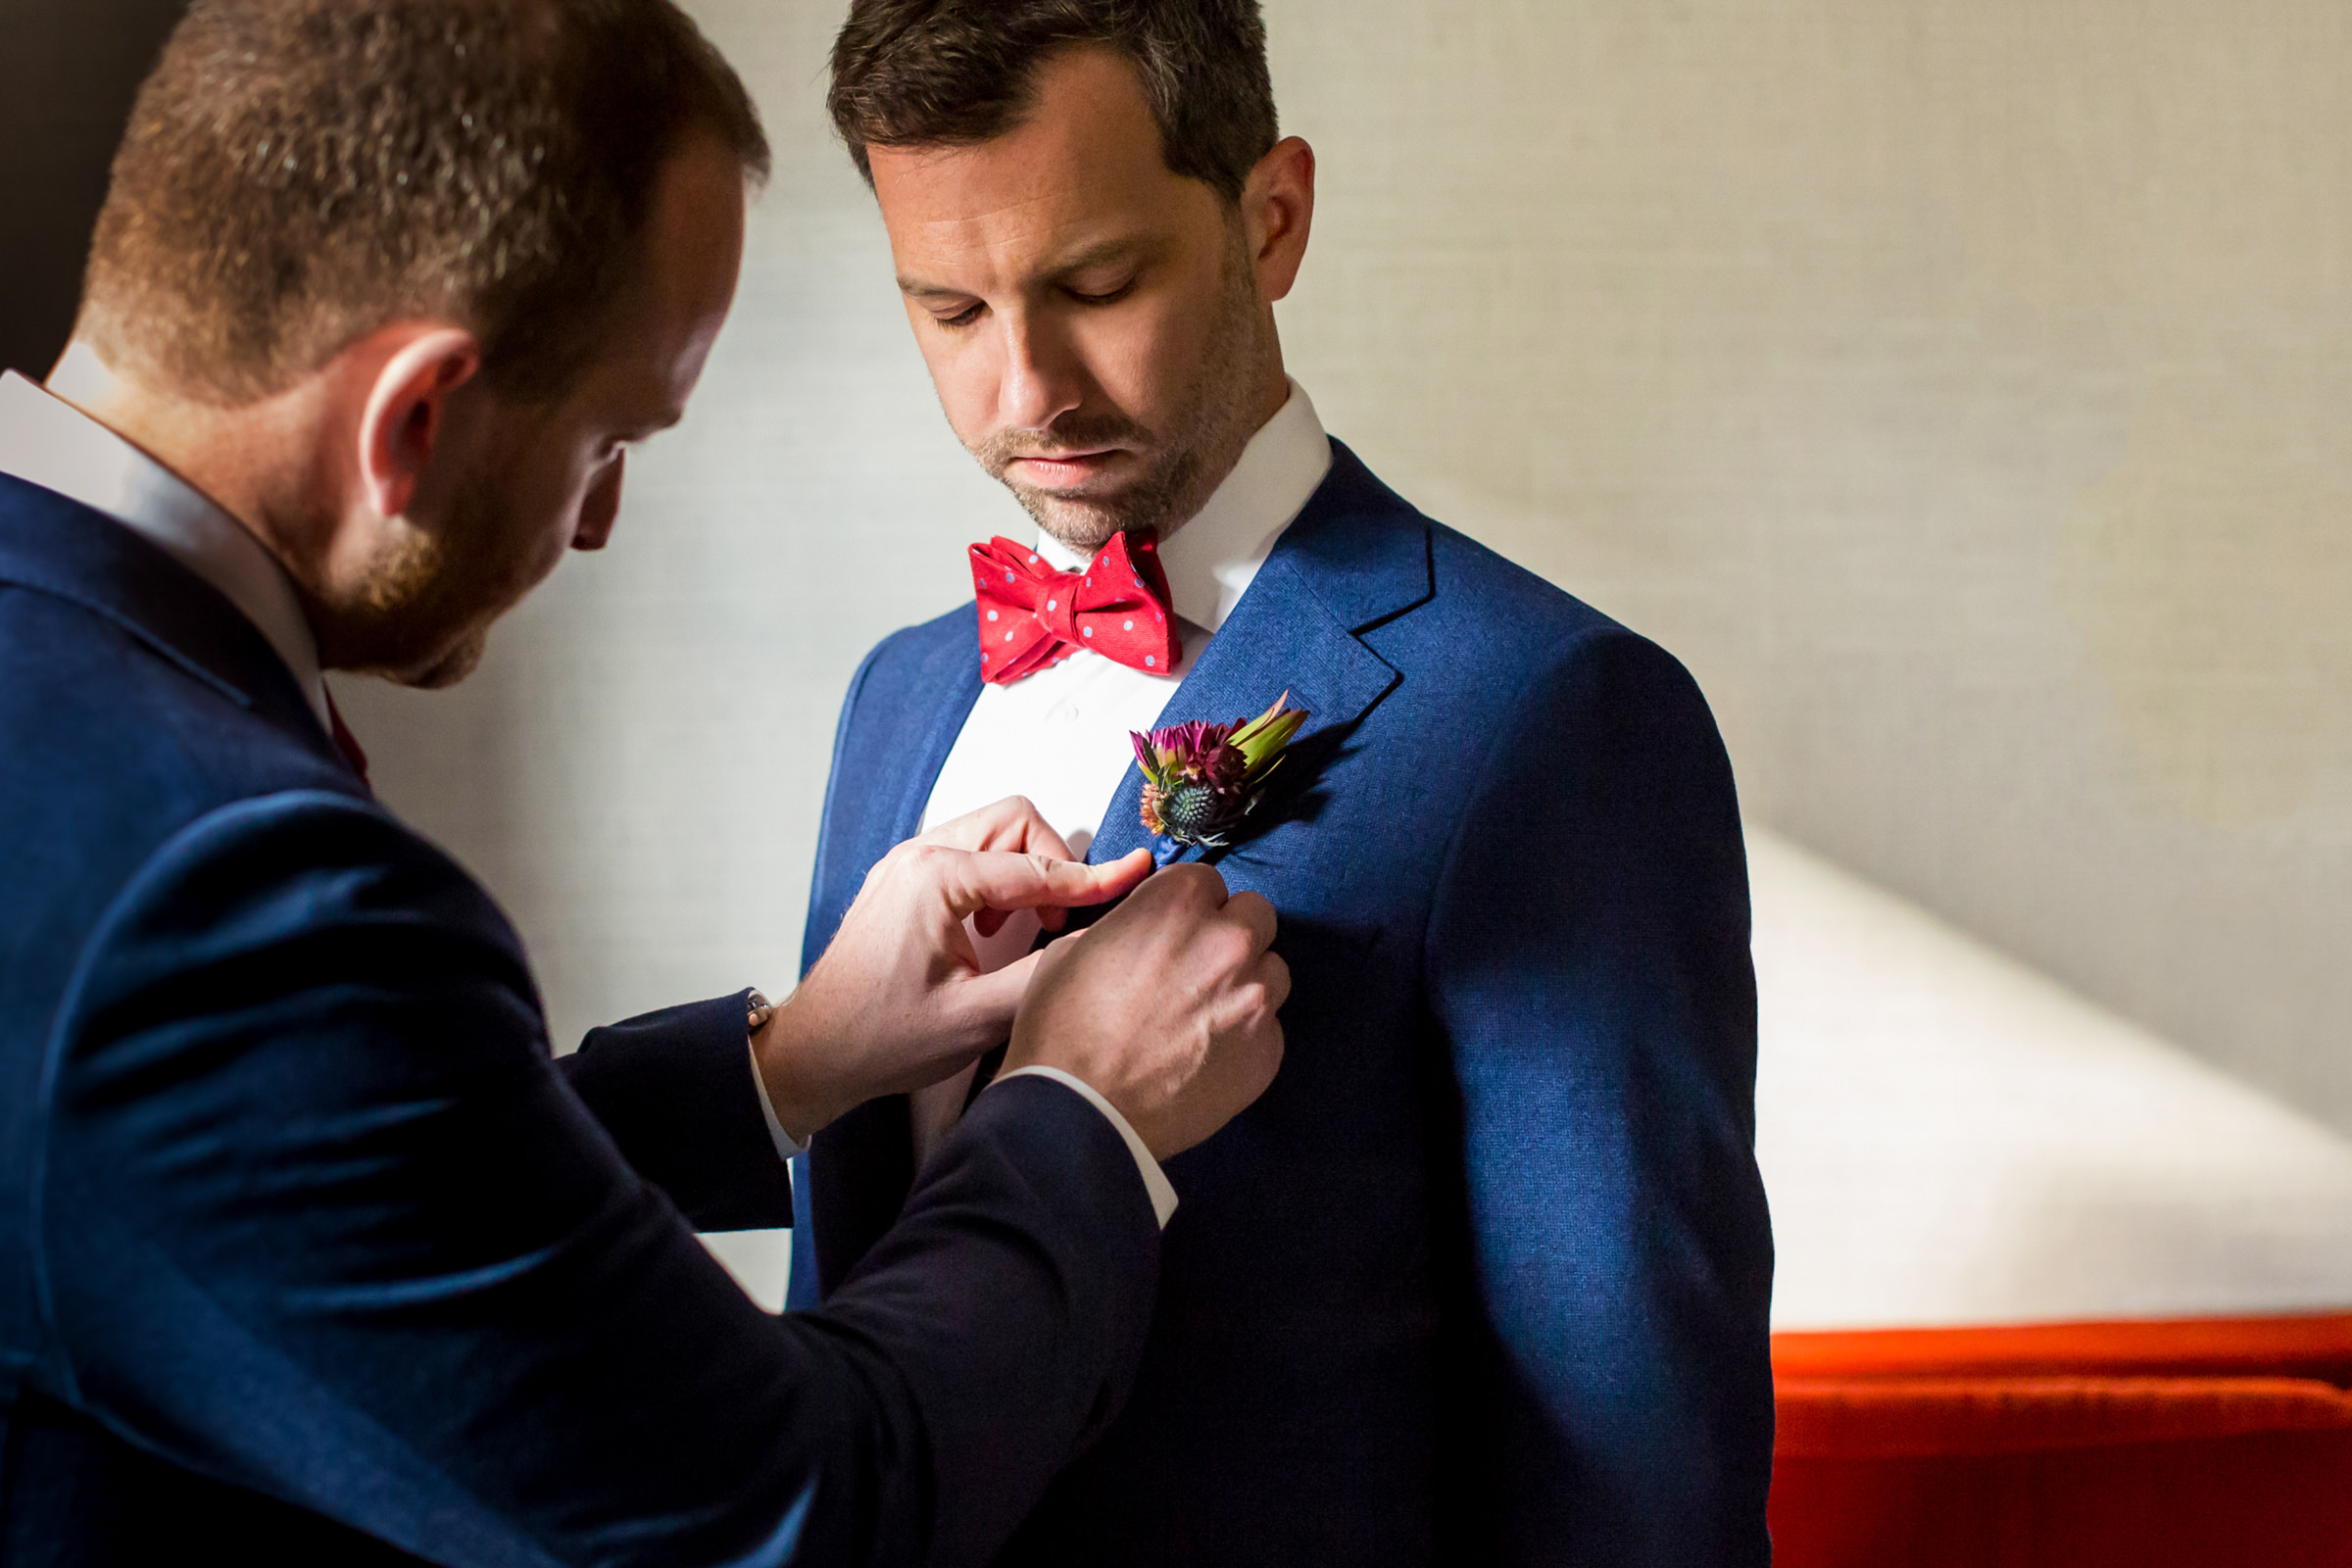 Groom getting his boutonniere fastened - photo by Procopio Photography - D.C. photographer